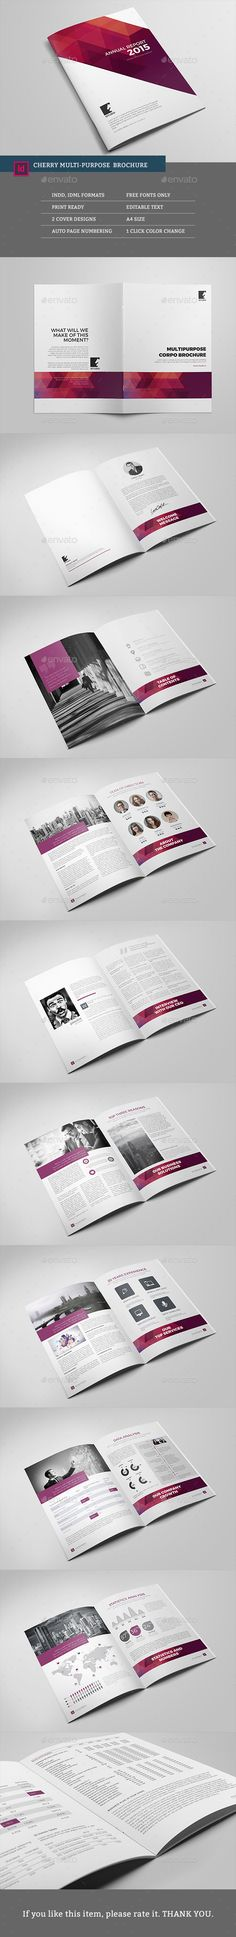 Brand Manual and Identity Template u2013 Corporate Design Brochure - business manual templates